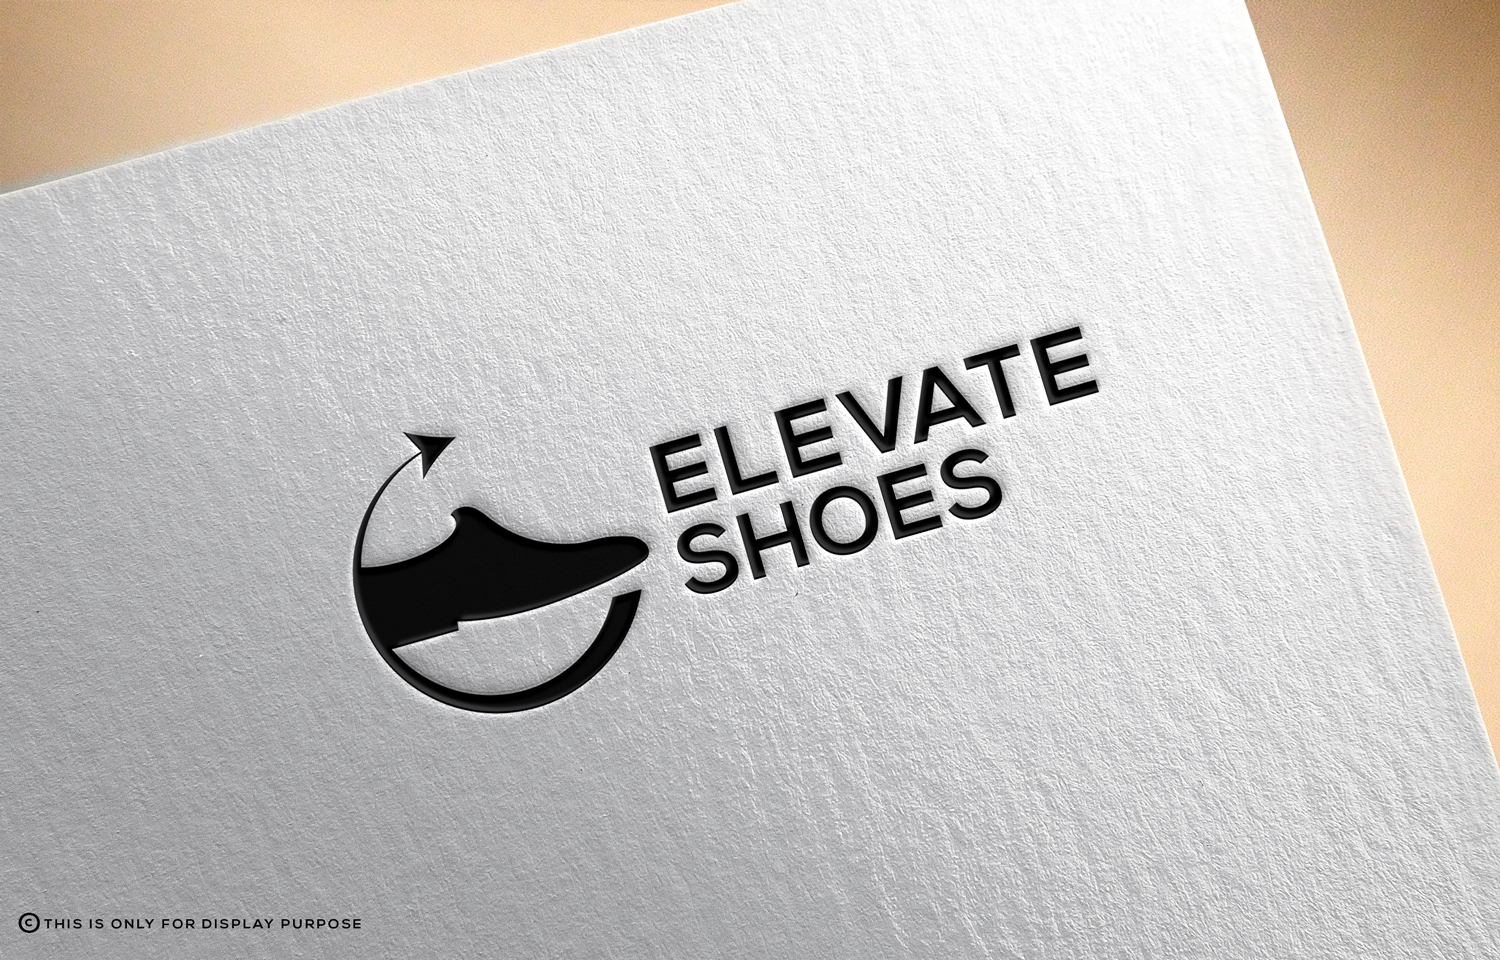 Masculine, Modern, It Company Logo Design for ELEVATE SHOES.